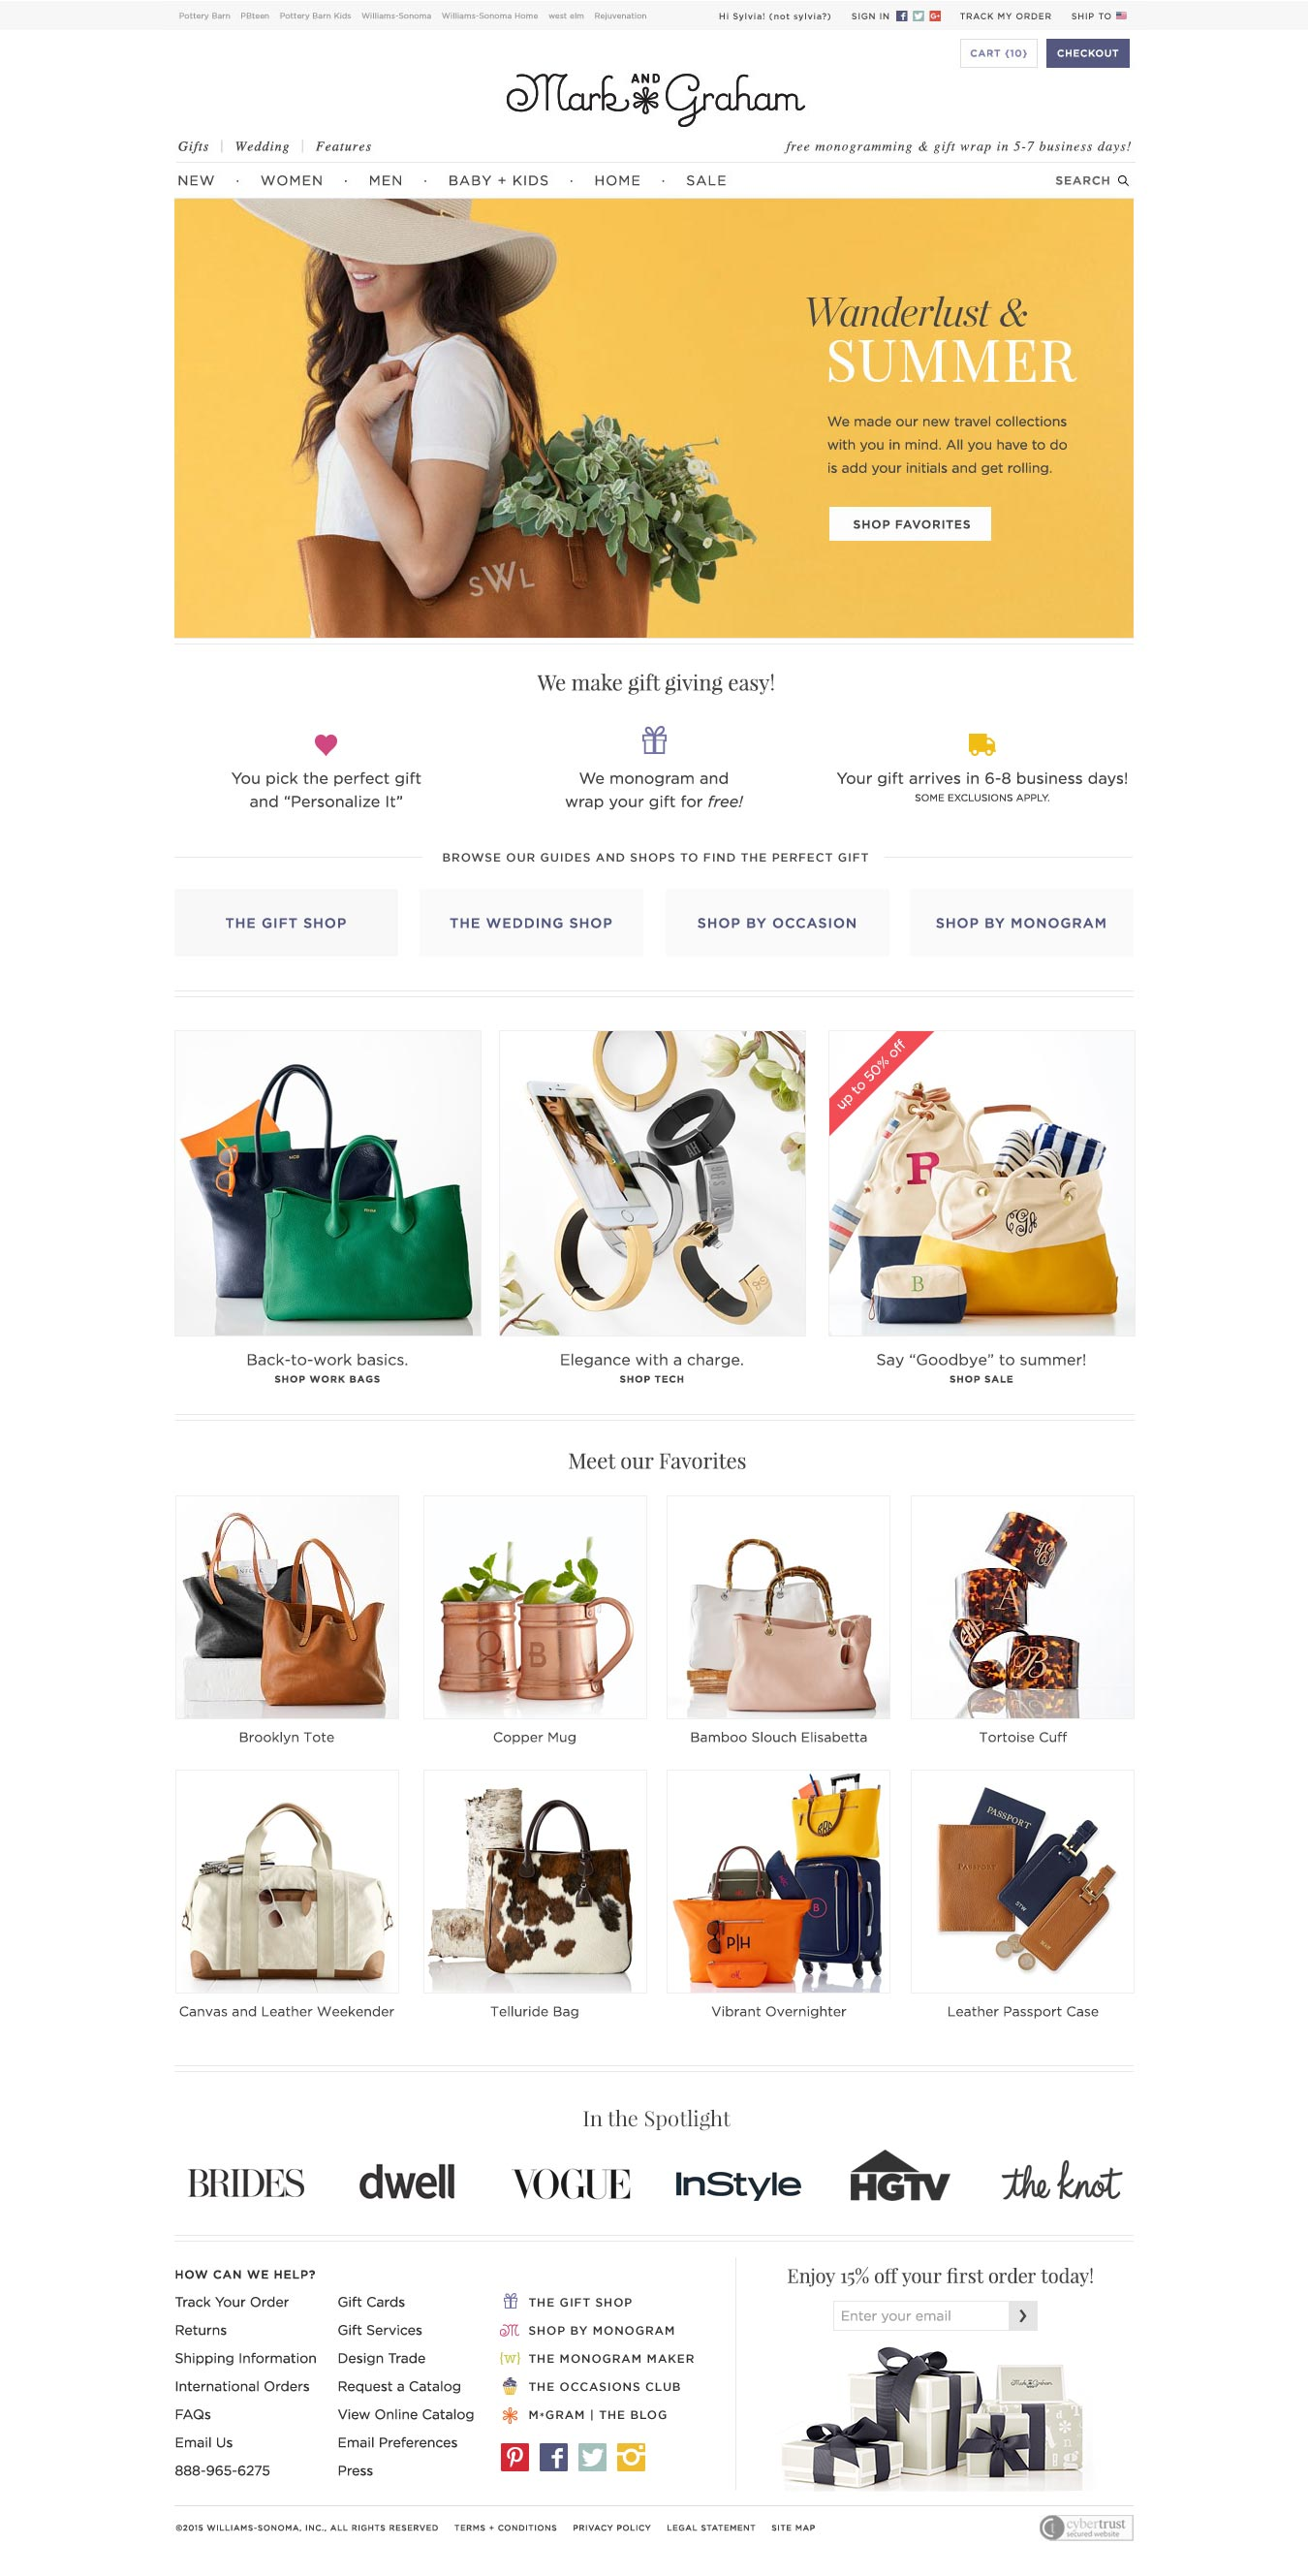 ecommerce-web-design-homepage.jpg